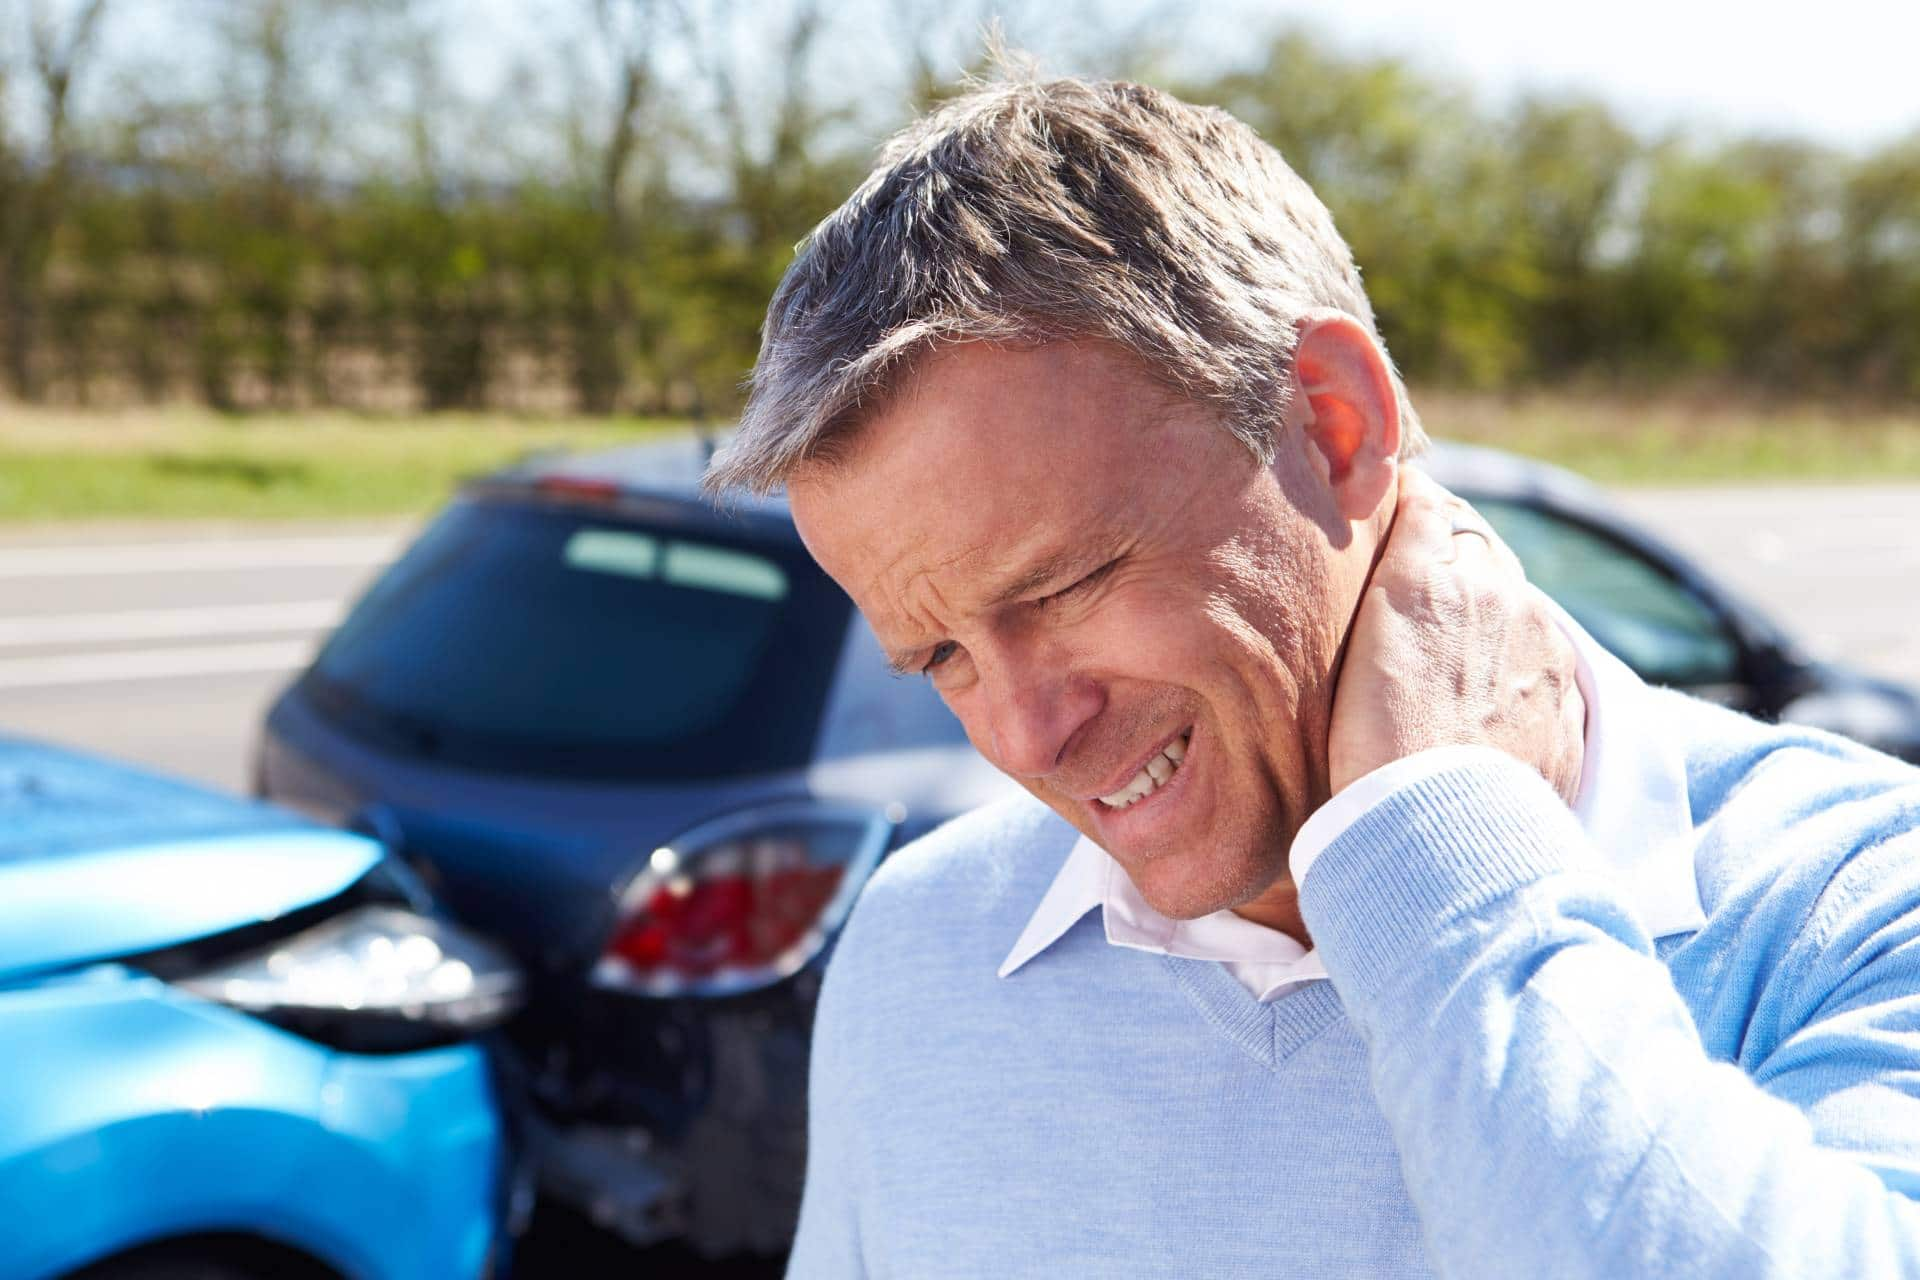 Hurt in a car accident? Schedule a free consultation with a personal injury lawyer at the Angell Firm in Forest Park, GA